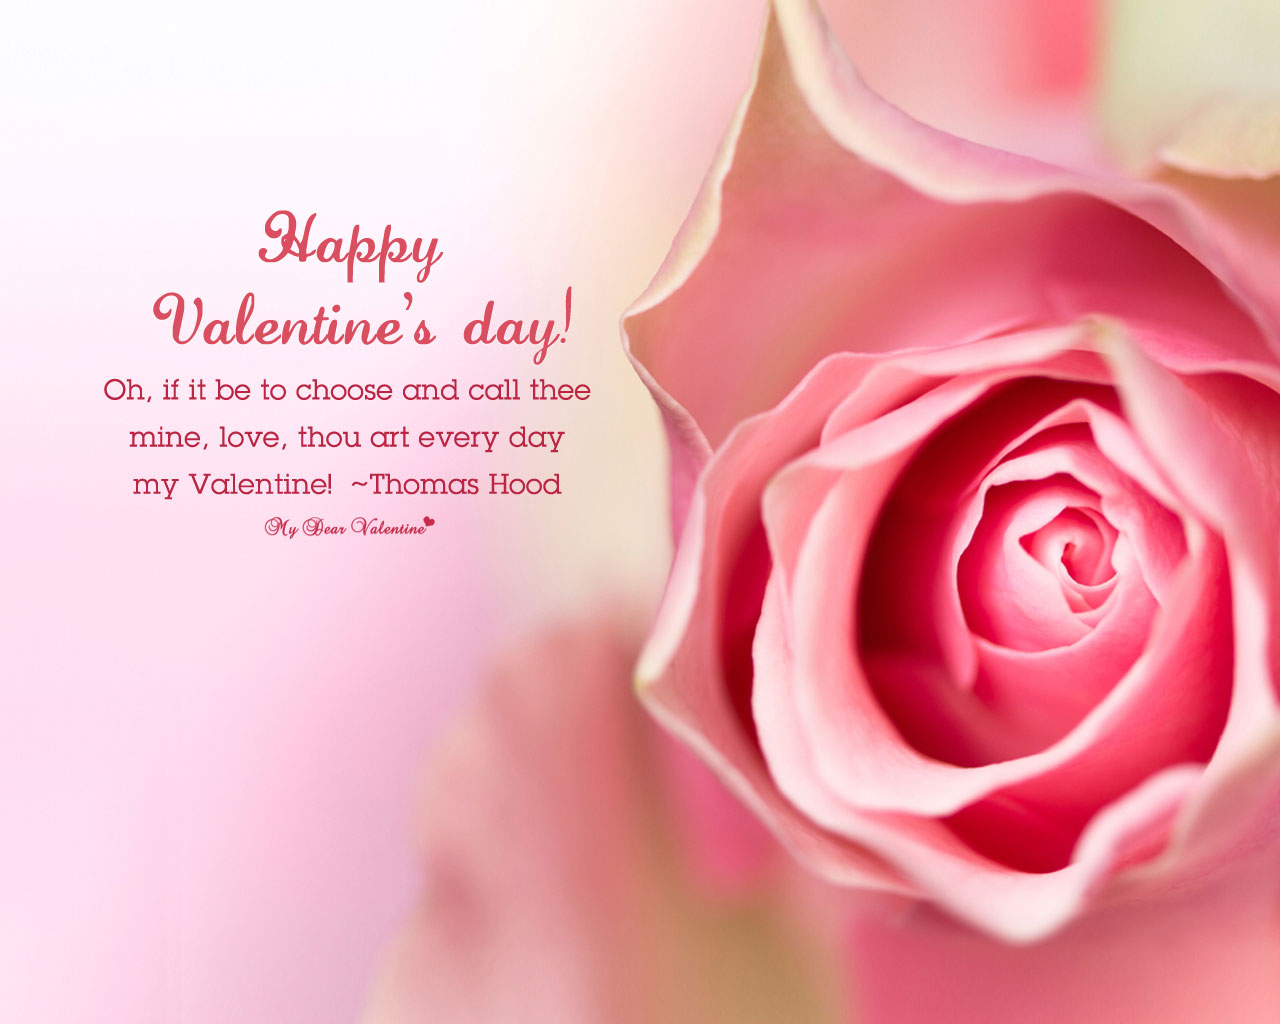 Best happy valentines day quotes and wishes 2016 for Valentines day love quotes